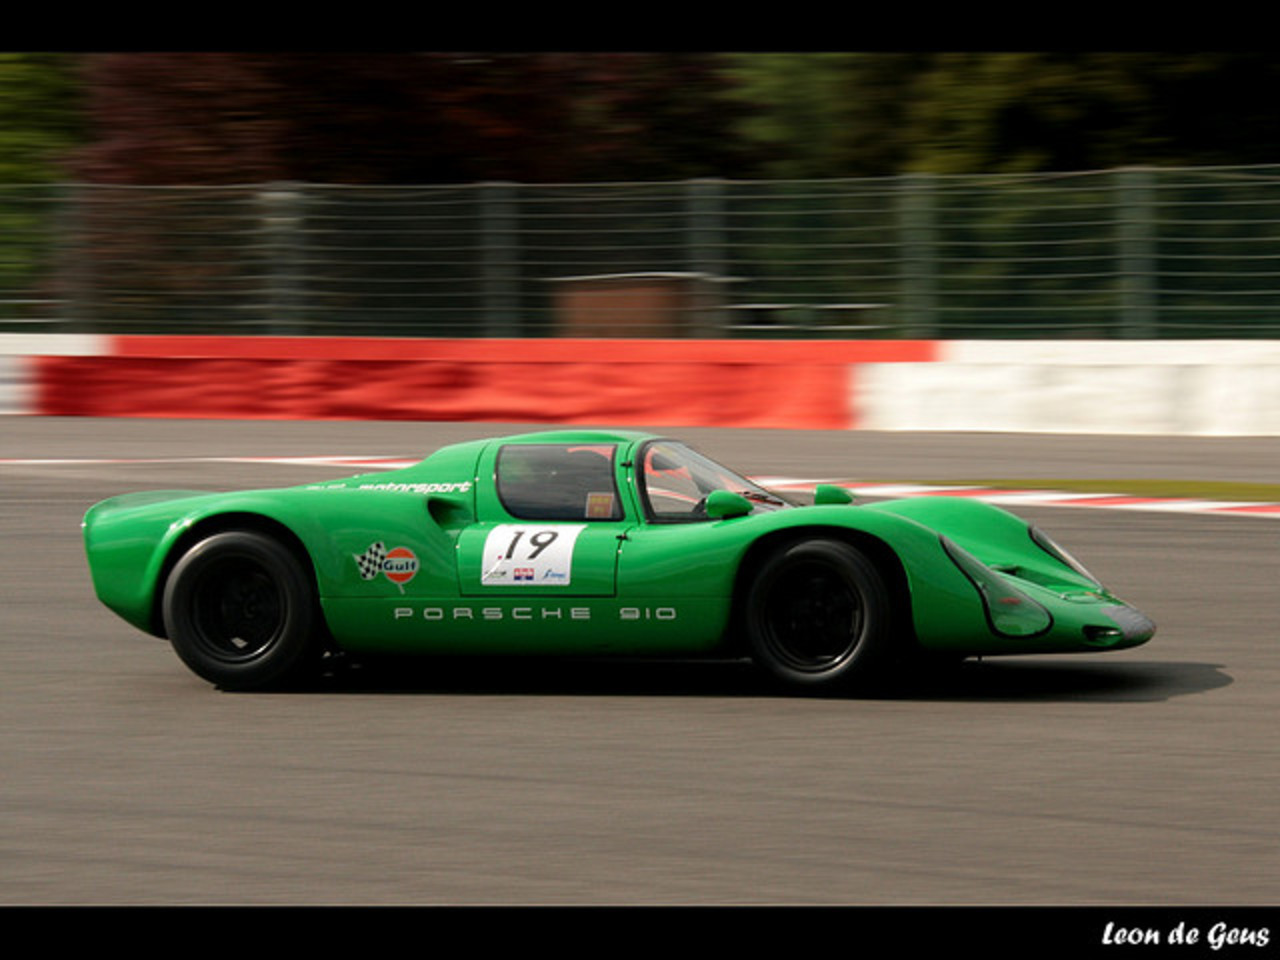 Beautifull Porsche 910 (Replica?) | Flickr - Photo Sharing!